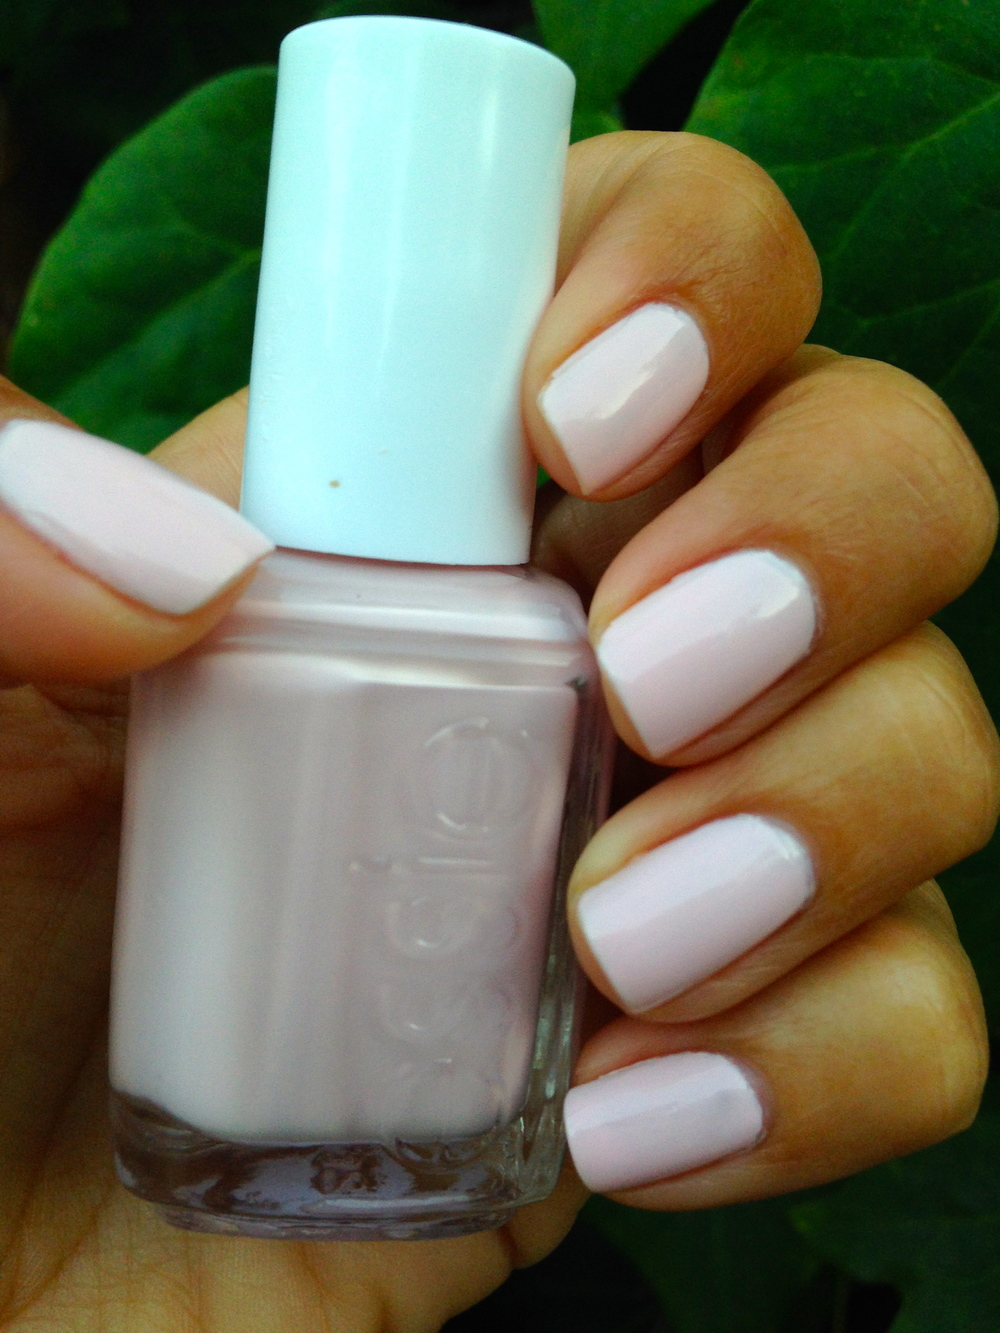 essi nail color: Romper Room, $8.50.